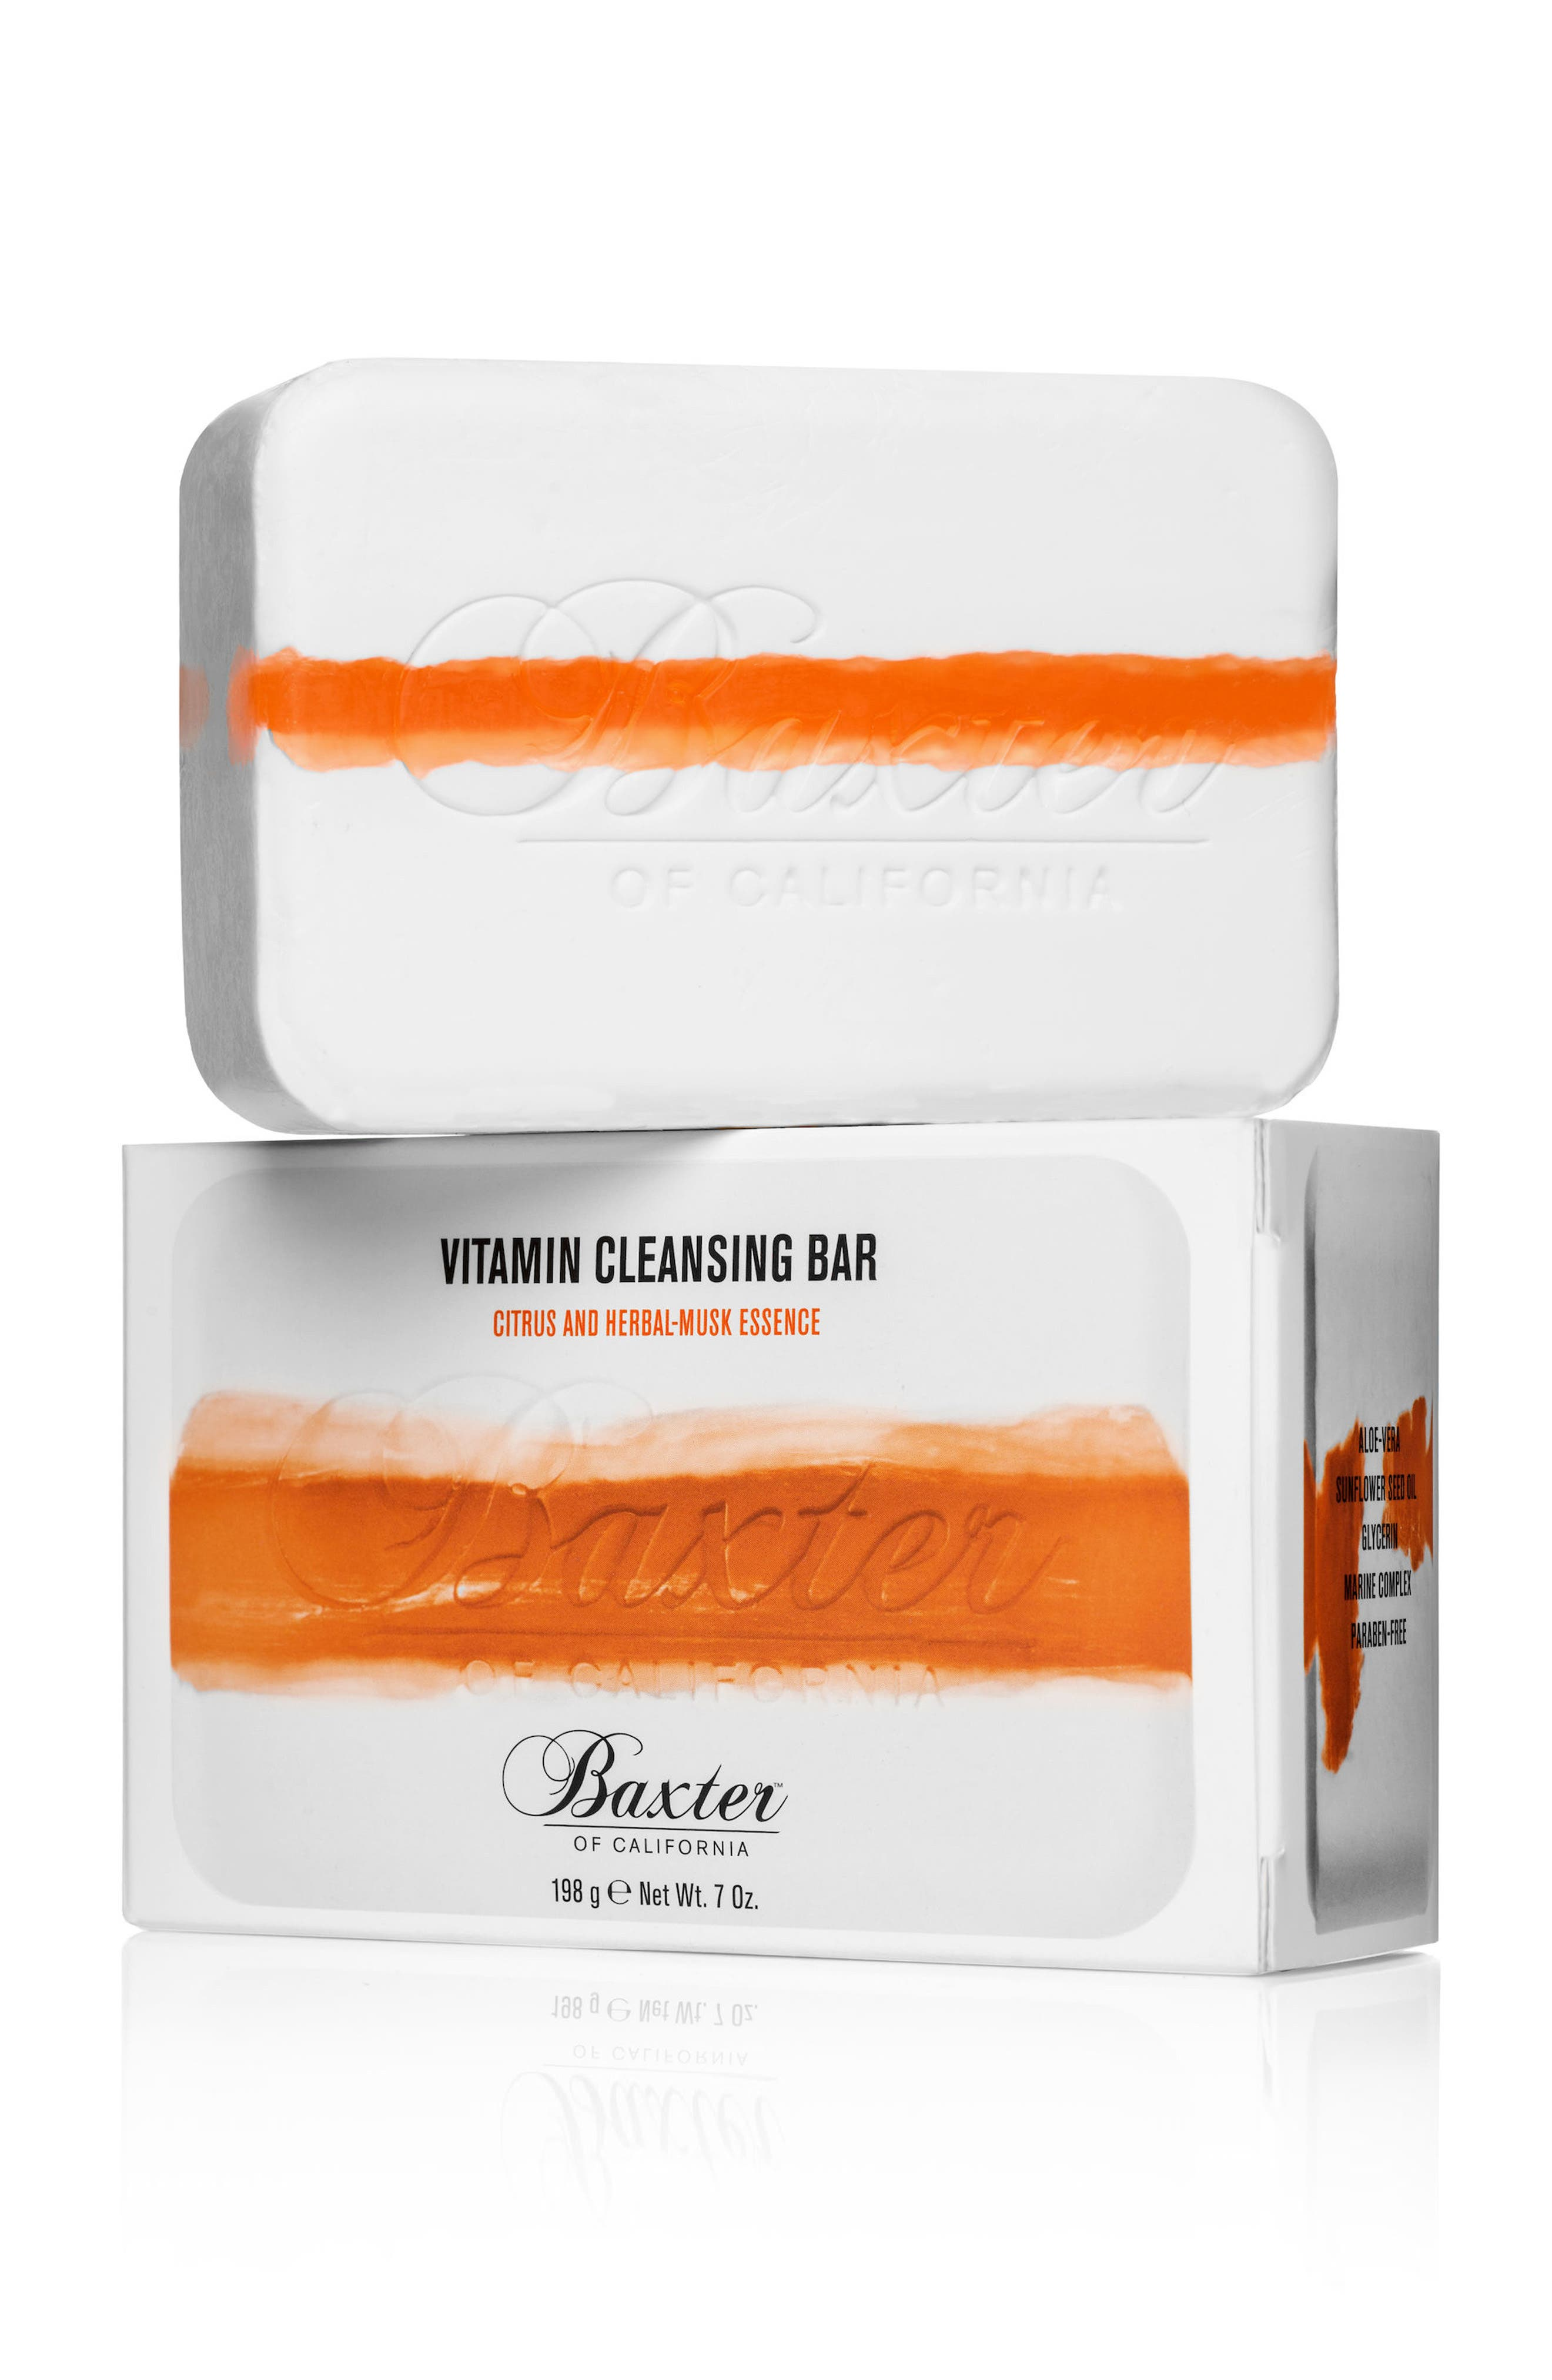 Baxter of California Vitamin Cleansing Bar